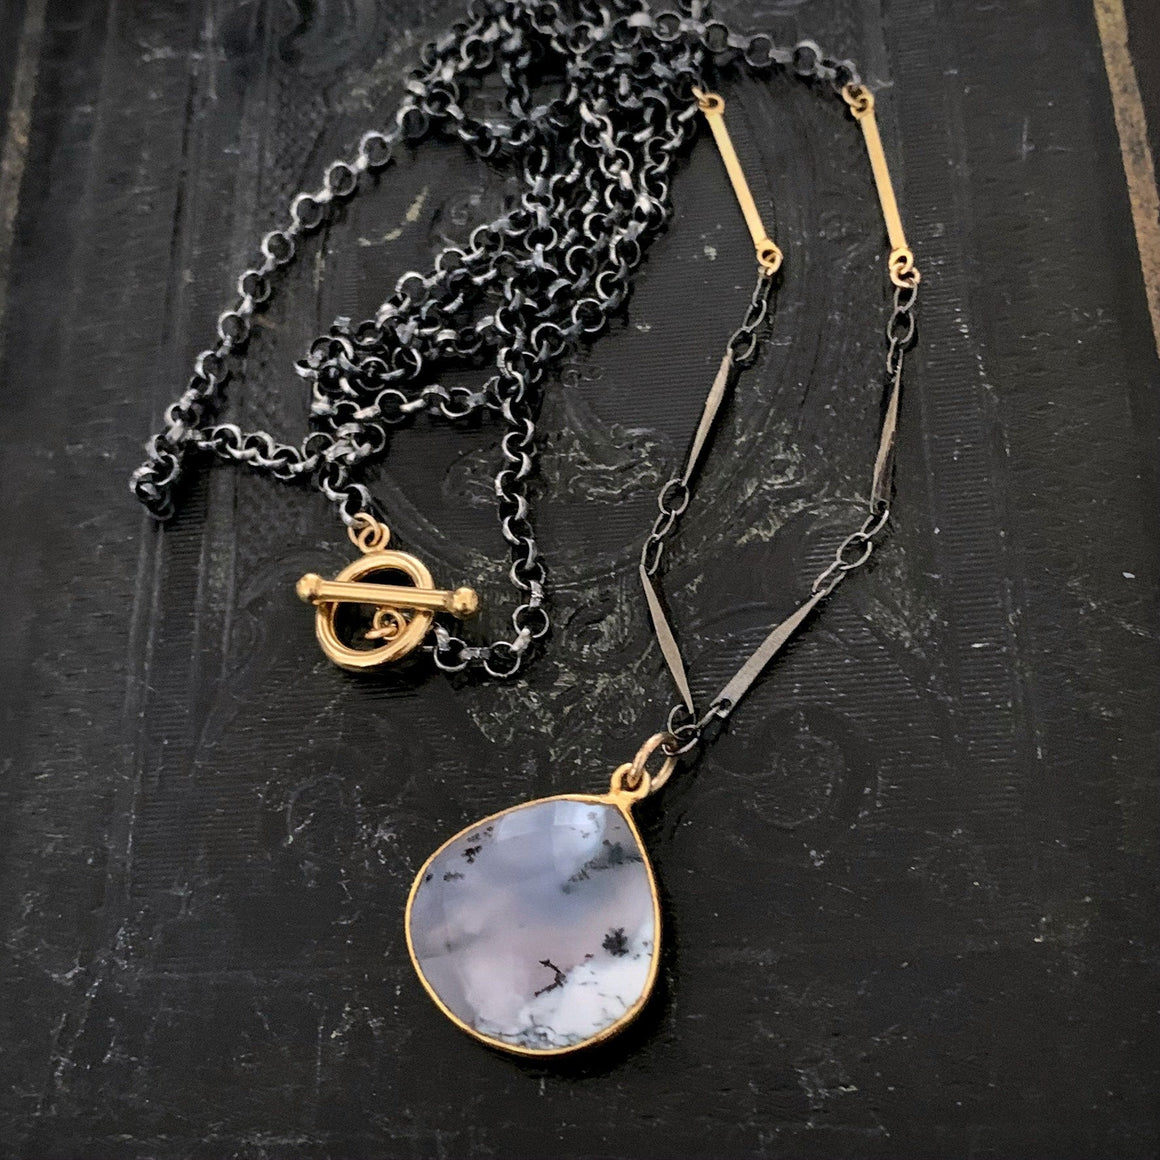 Agate Stone Pendant Black Chain Gold Toggle Clasp Necklace - ViaLove Designs